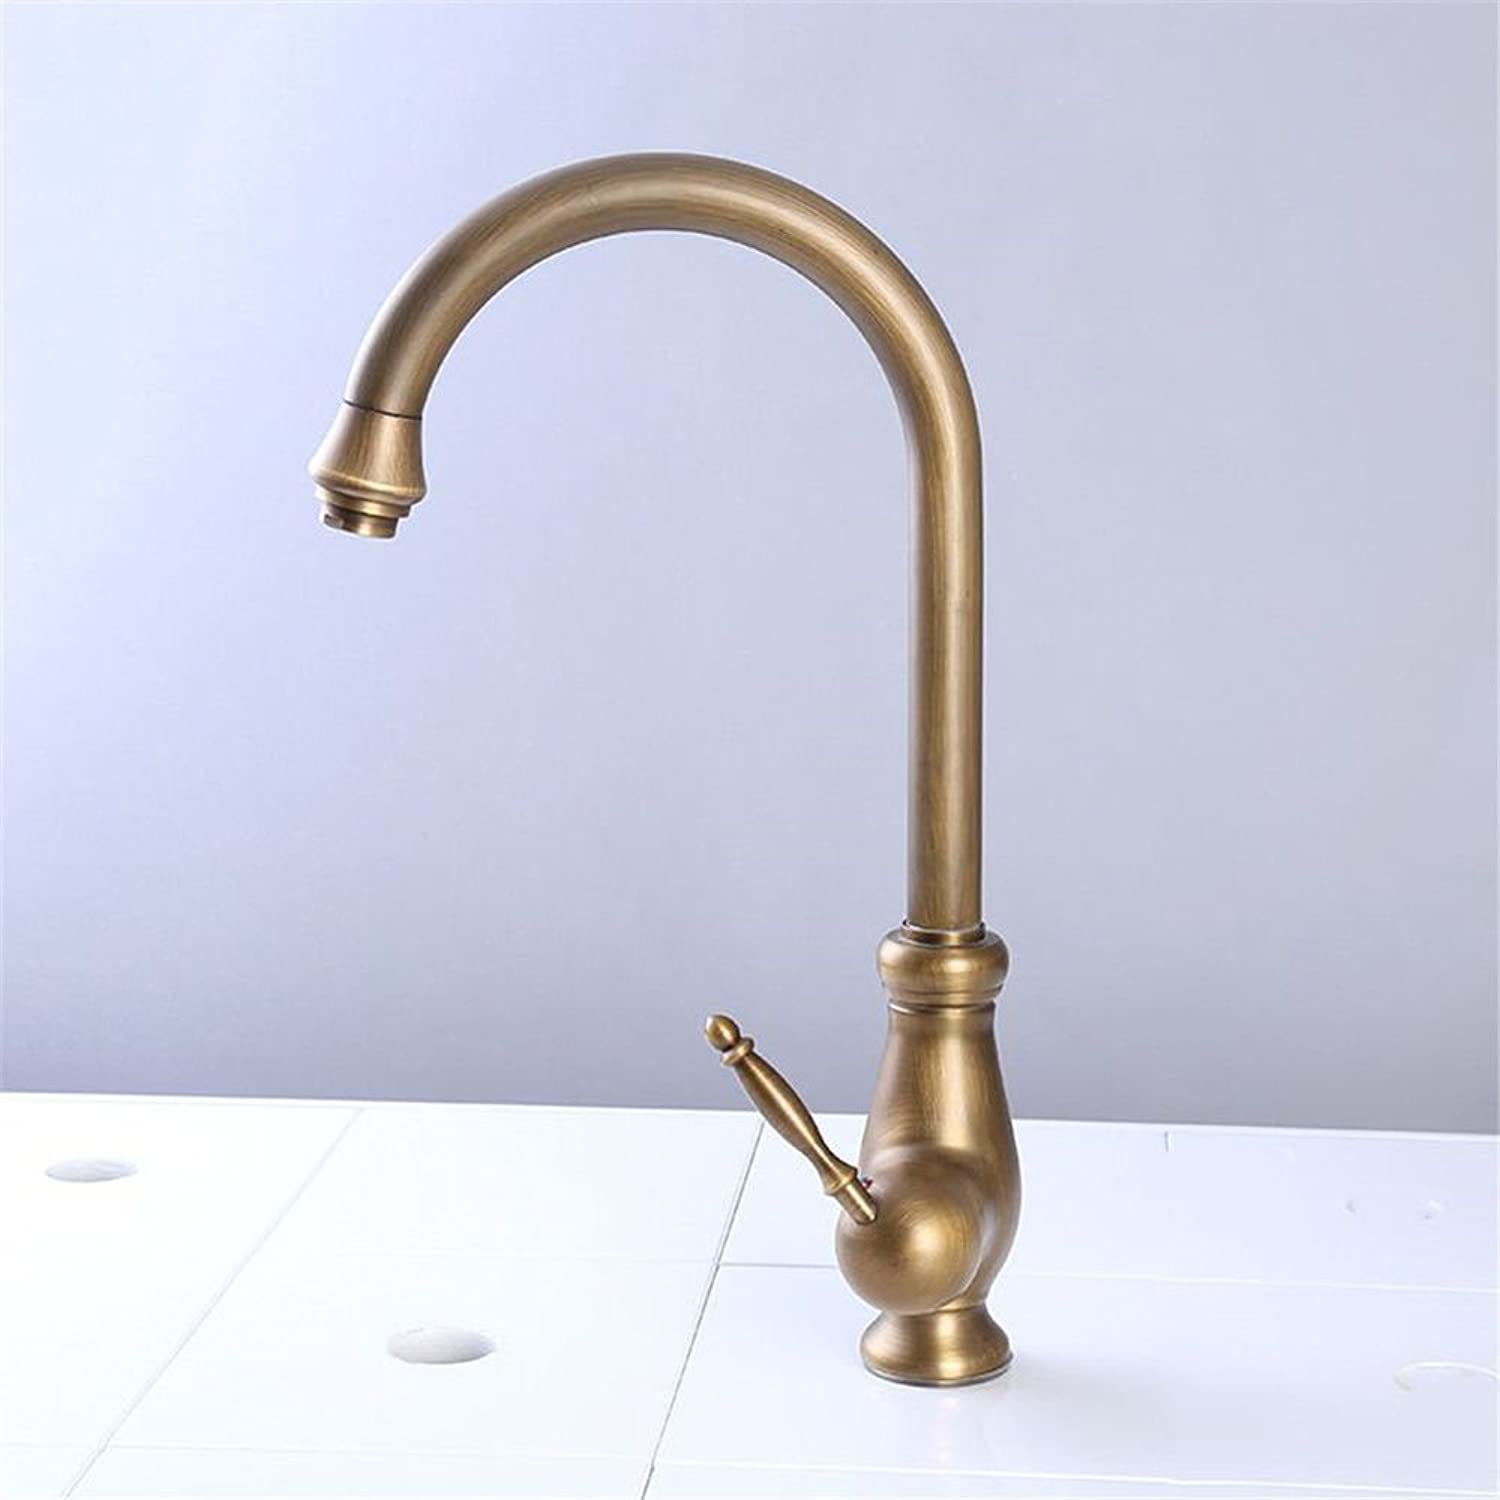 Hlluya Professional Sink Mixer Tap Kitchen Faucet The copper kitchen faucet to wash dishes pool faucet sink mixer mixing of hot and cold water valve redation single hole single lever faucets,